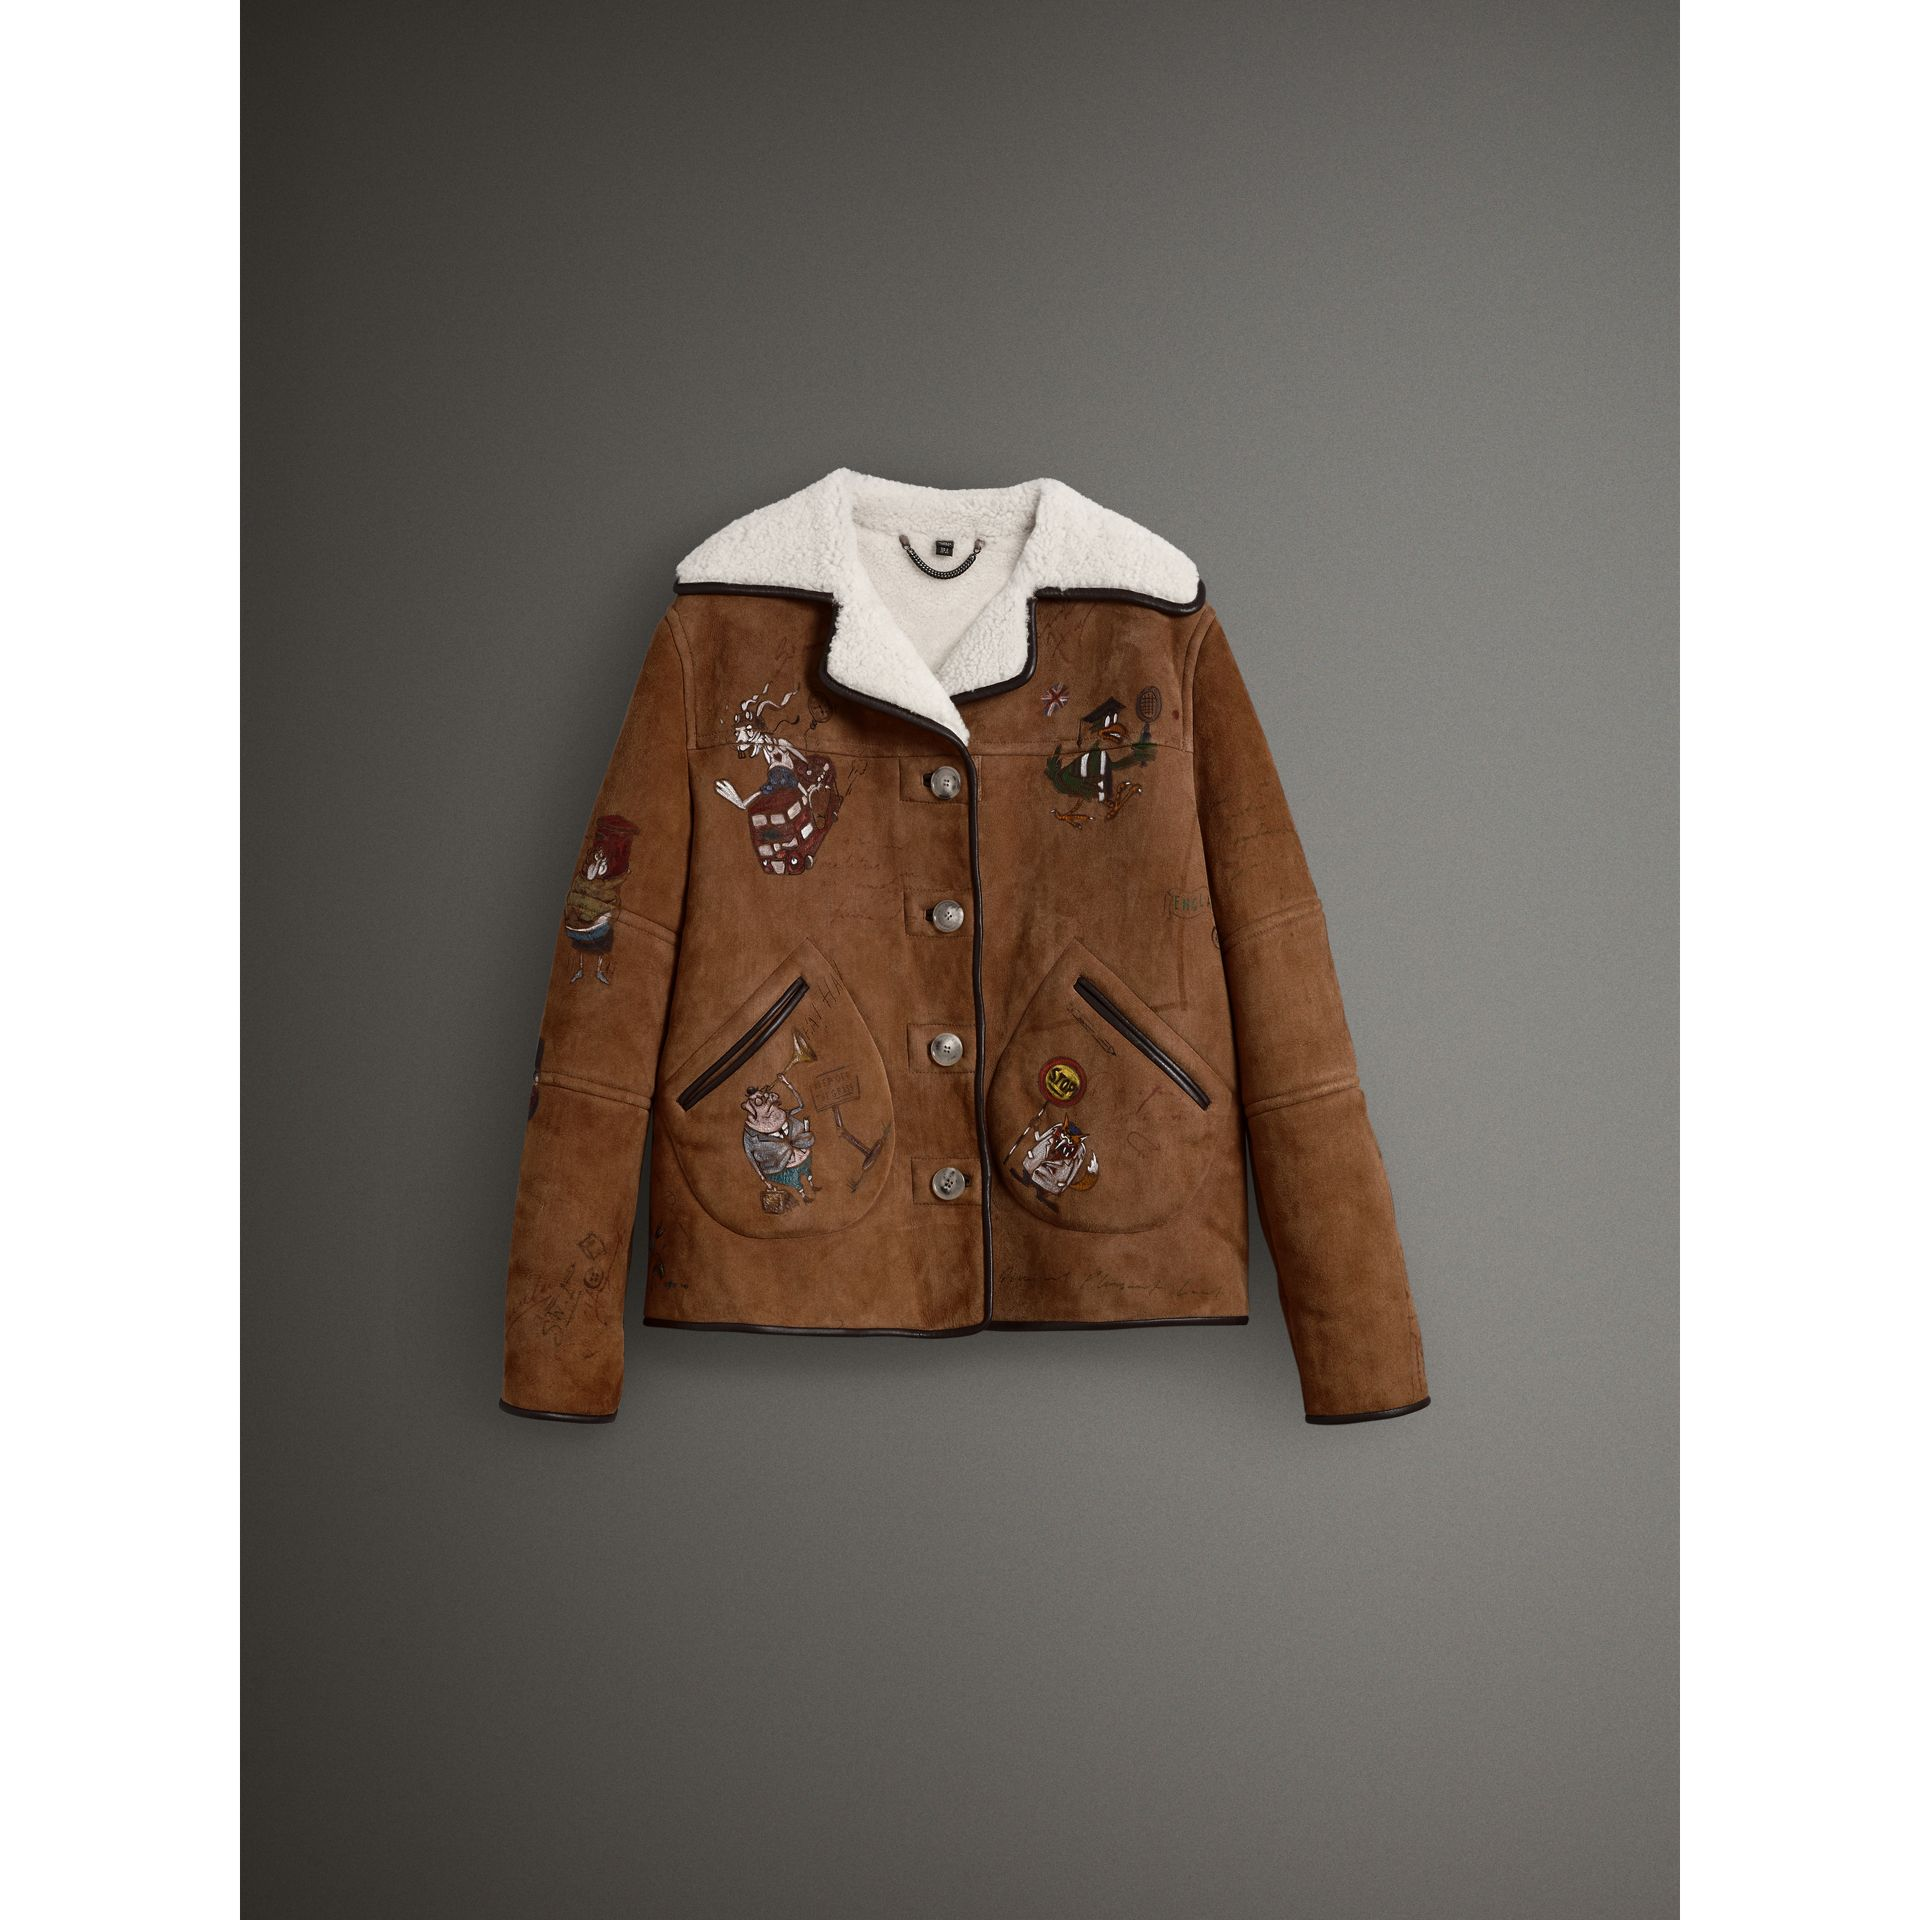 Sketch Print Shearling Jacket in Caramel - Women | Burberry United States - gallery image 3